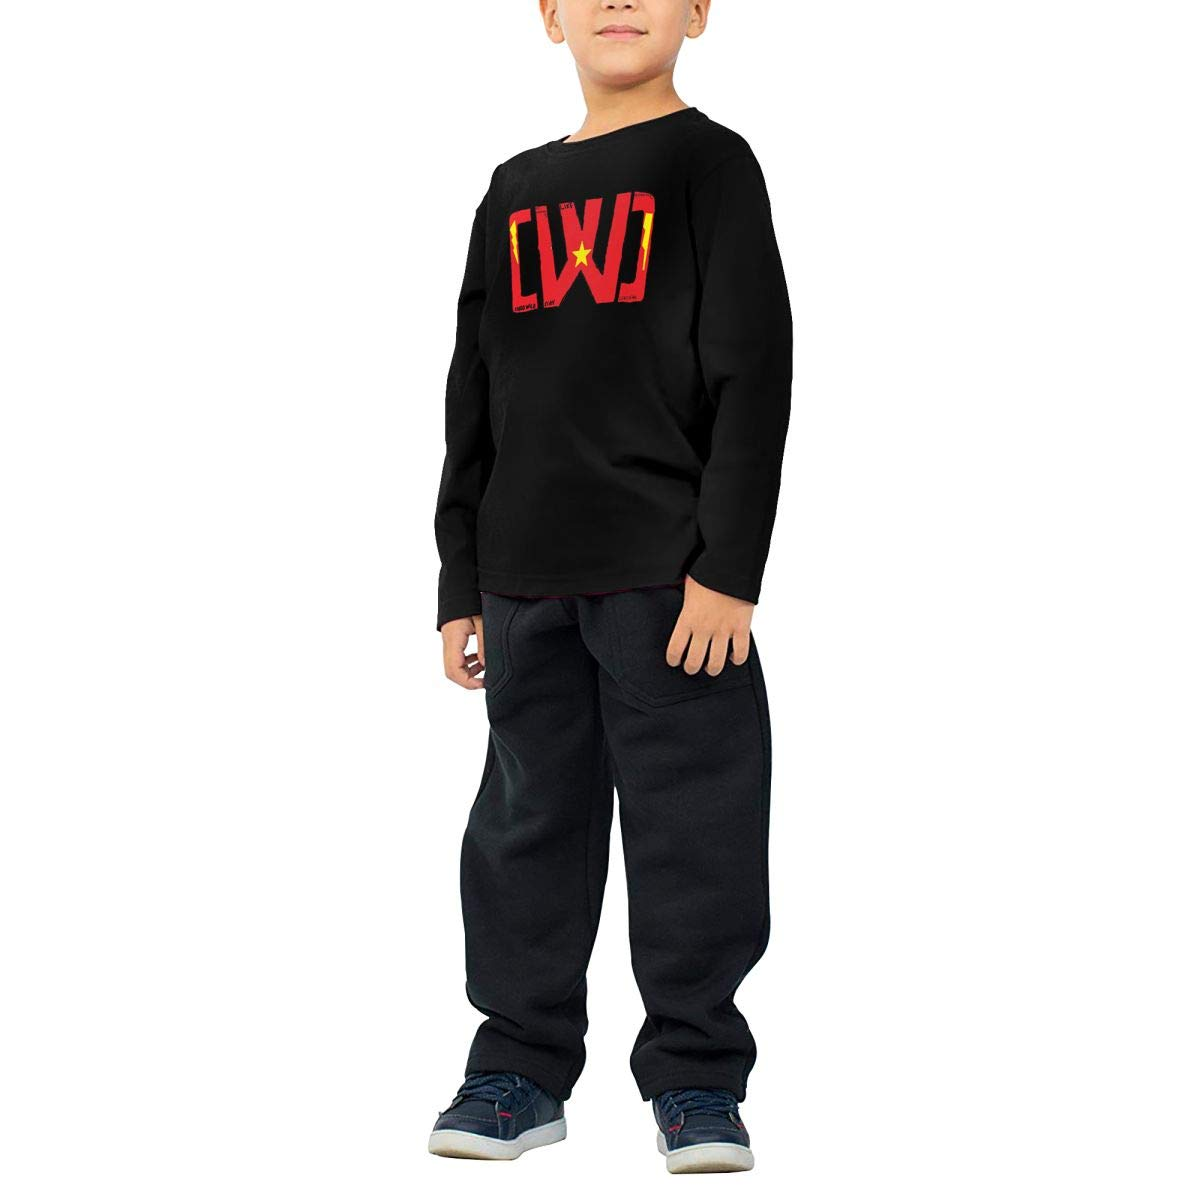 Nickly CWC Chad Wild Clay Boys Long Sleeve Tees Crewneck Cotton Soft Children T-Shirt Clothes Outfit